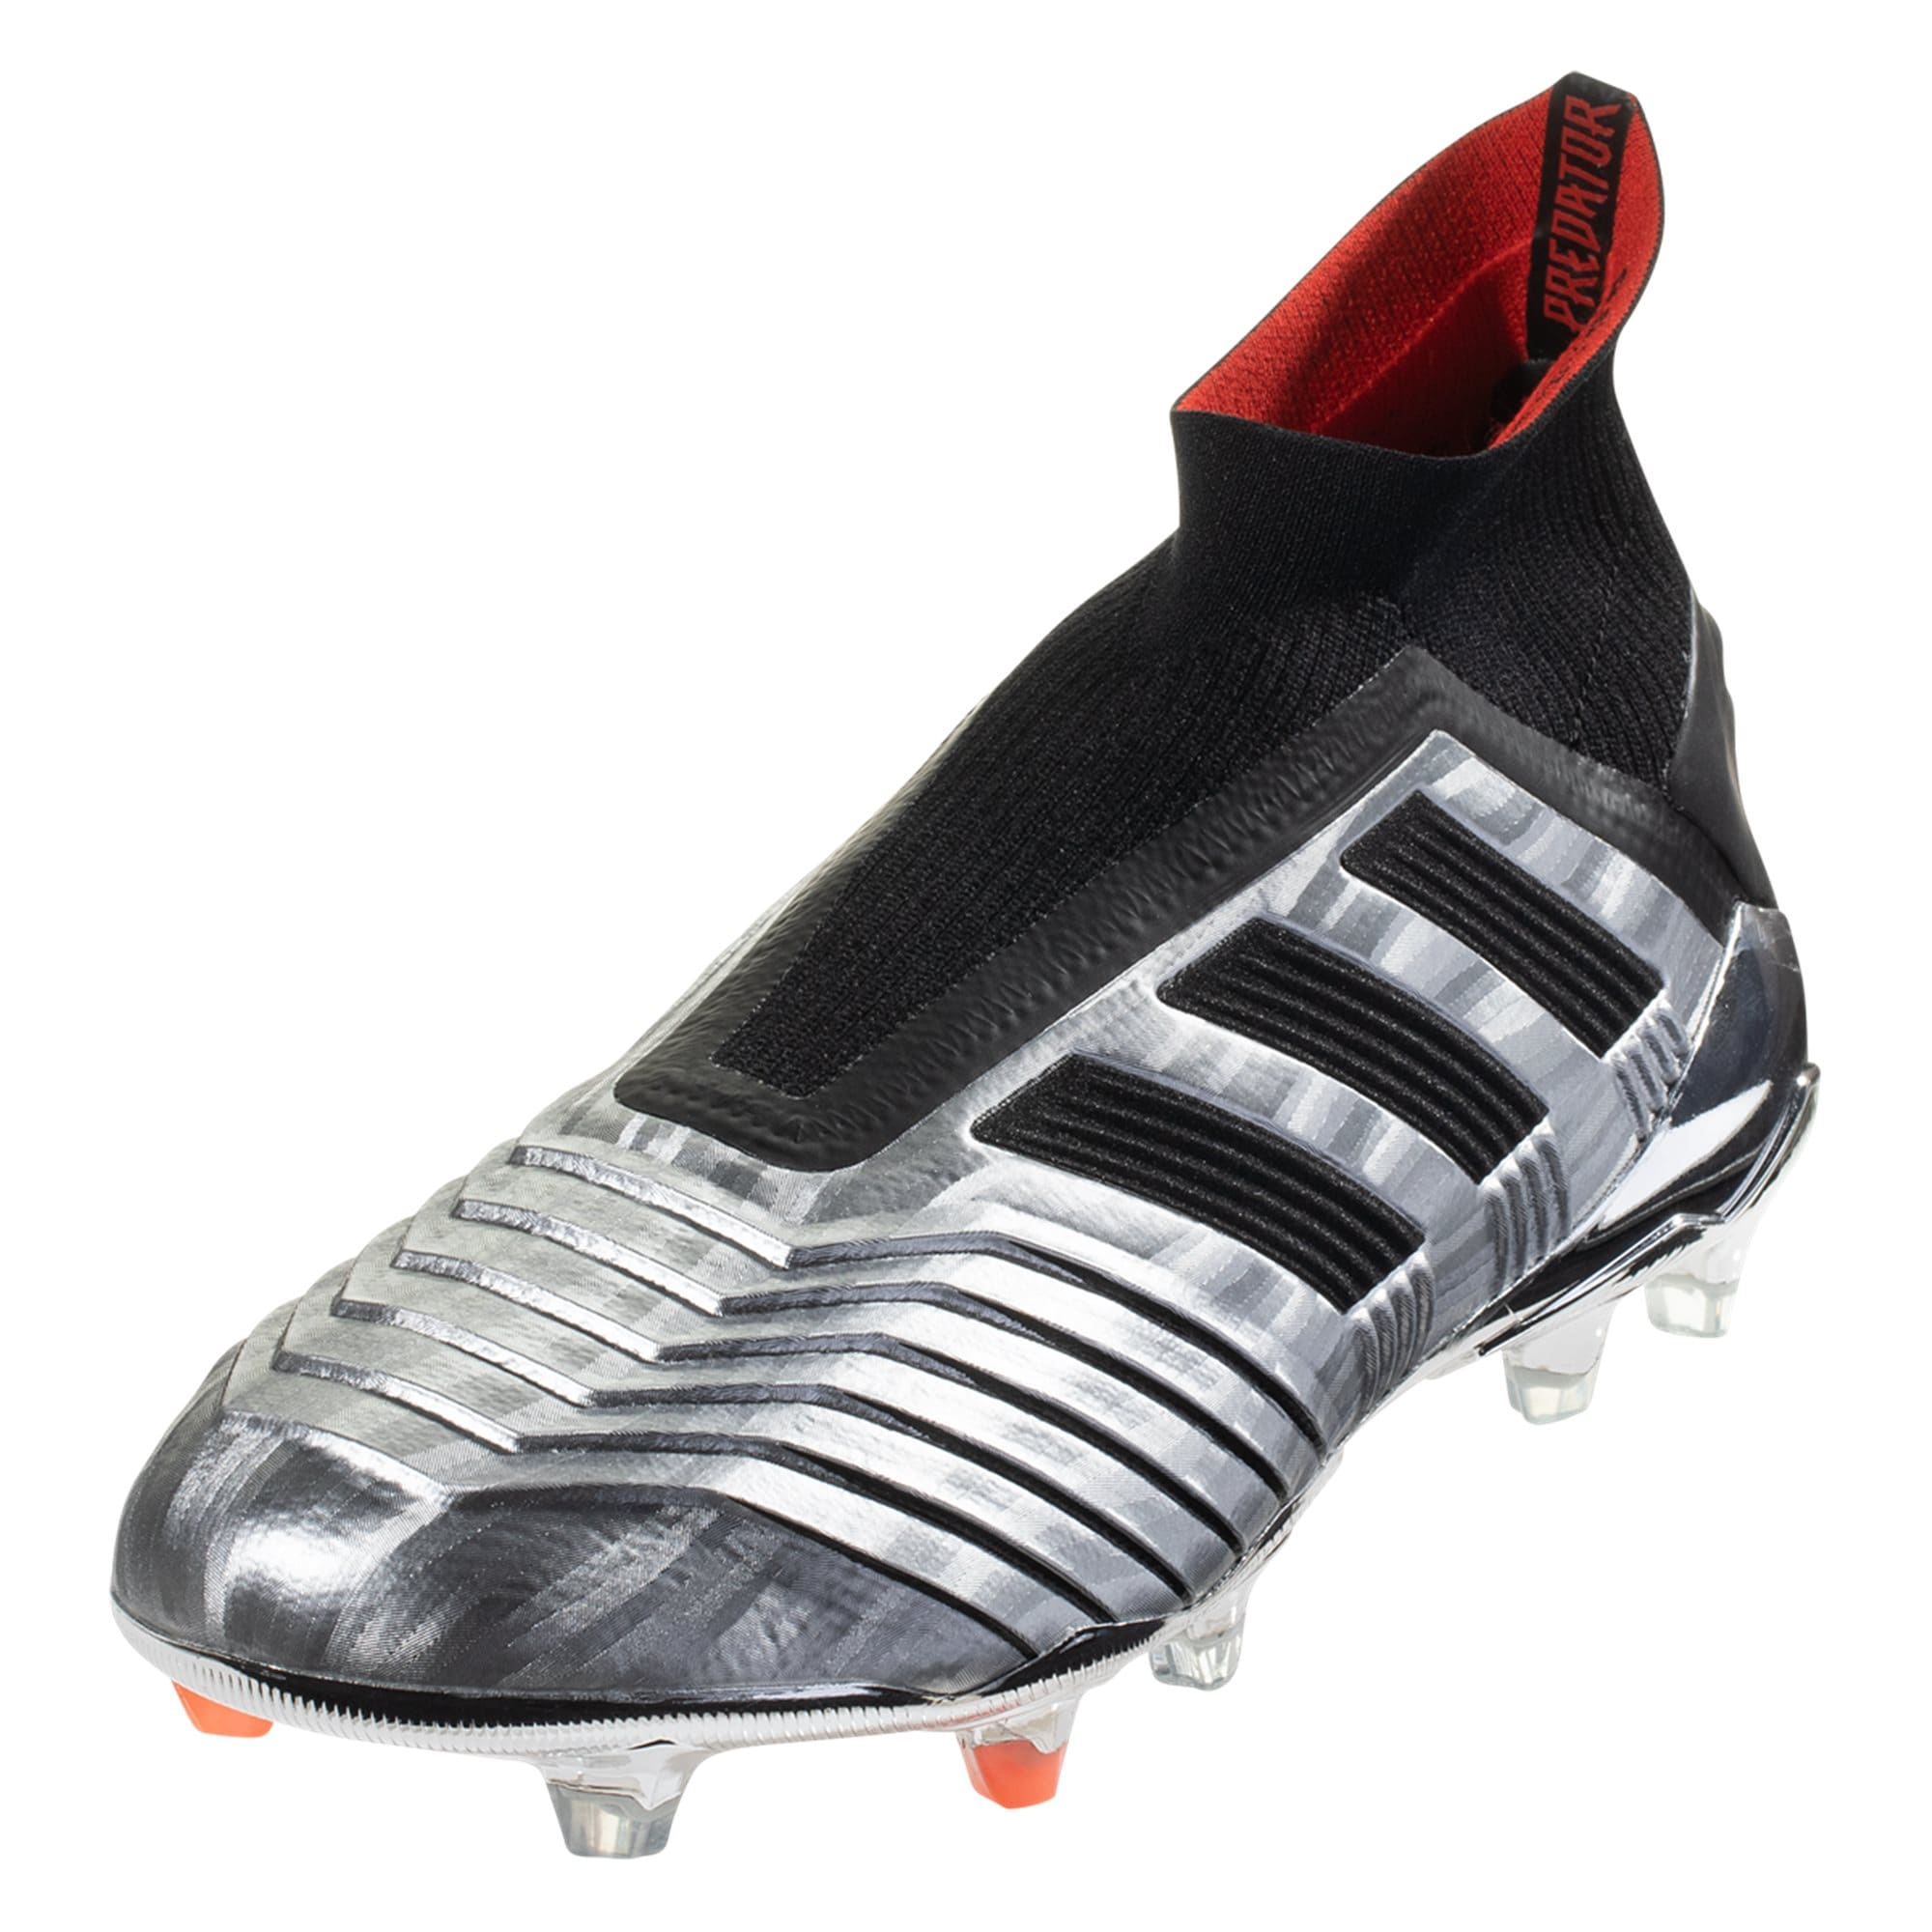 adidas Predator 19+ FG Firm Ground Soccer Cleat - Metallic Silver / Black / Hi-Res Red